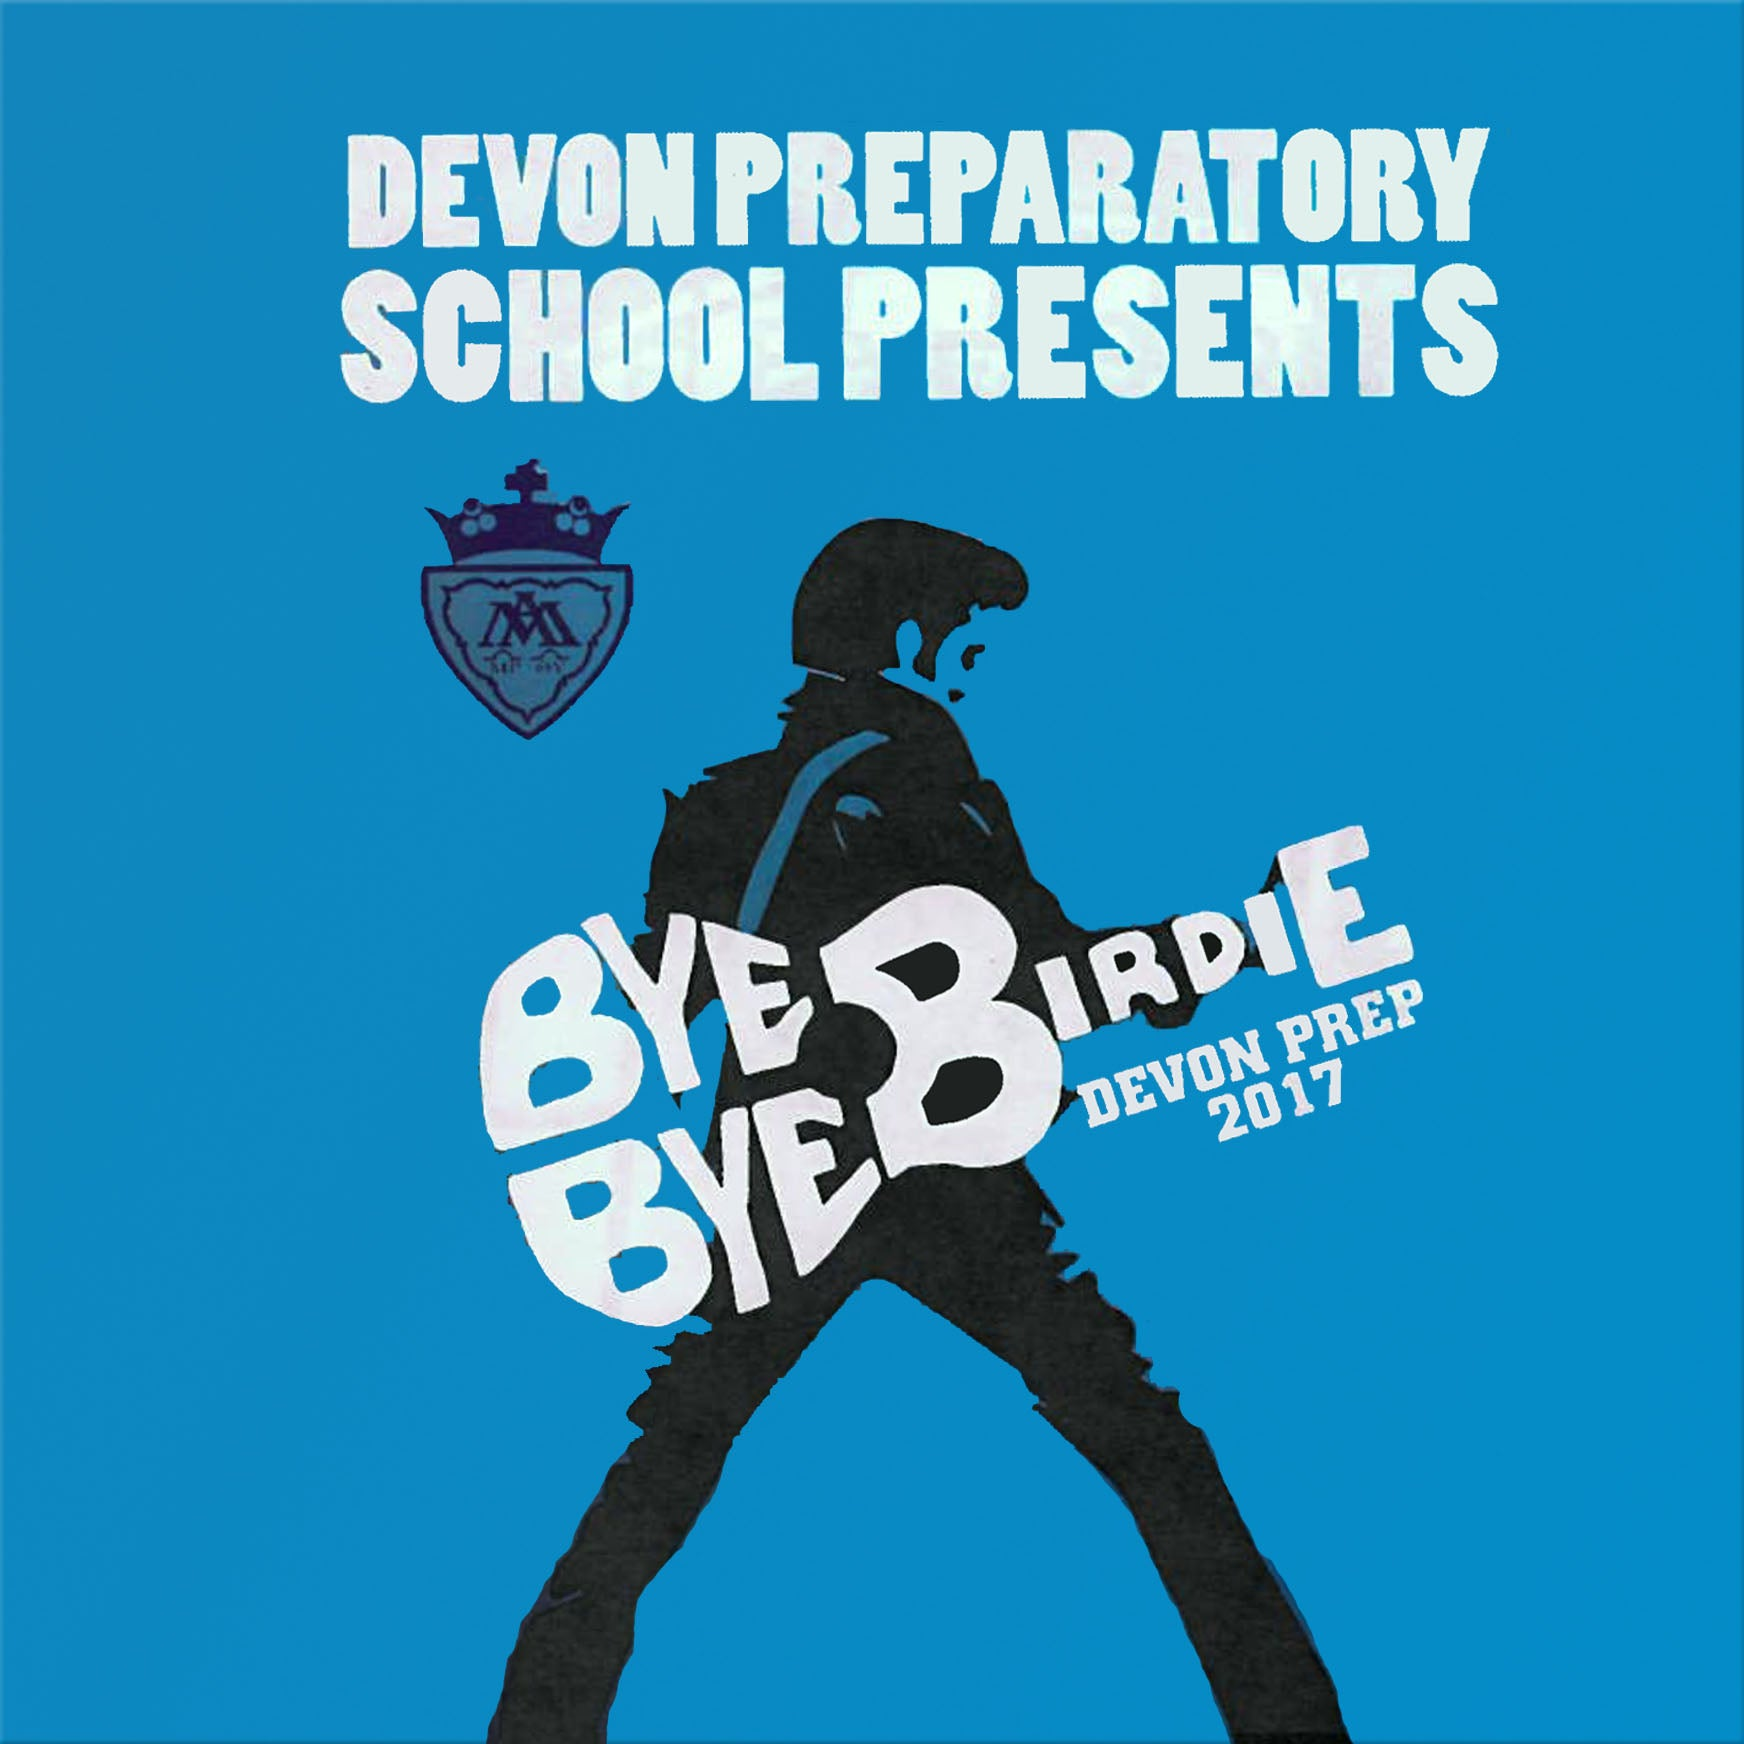 Bye Bye Birdie performed by Devon Preparatory School Theater